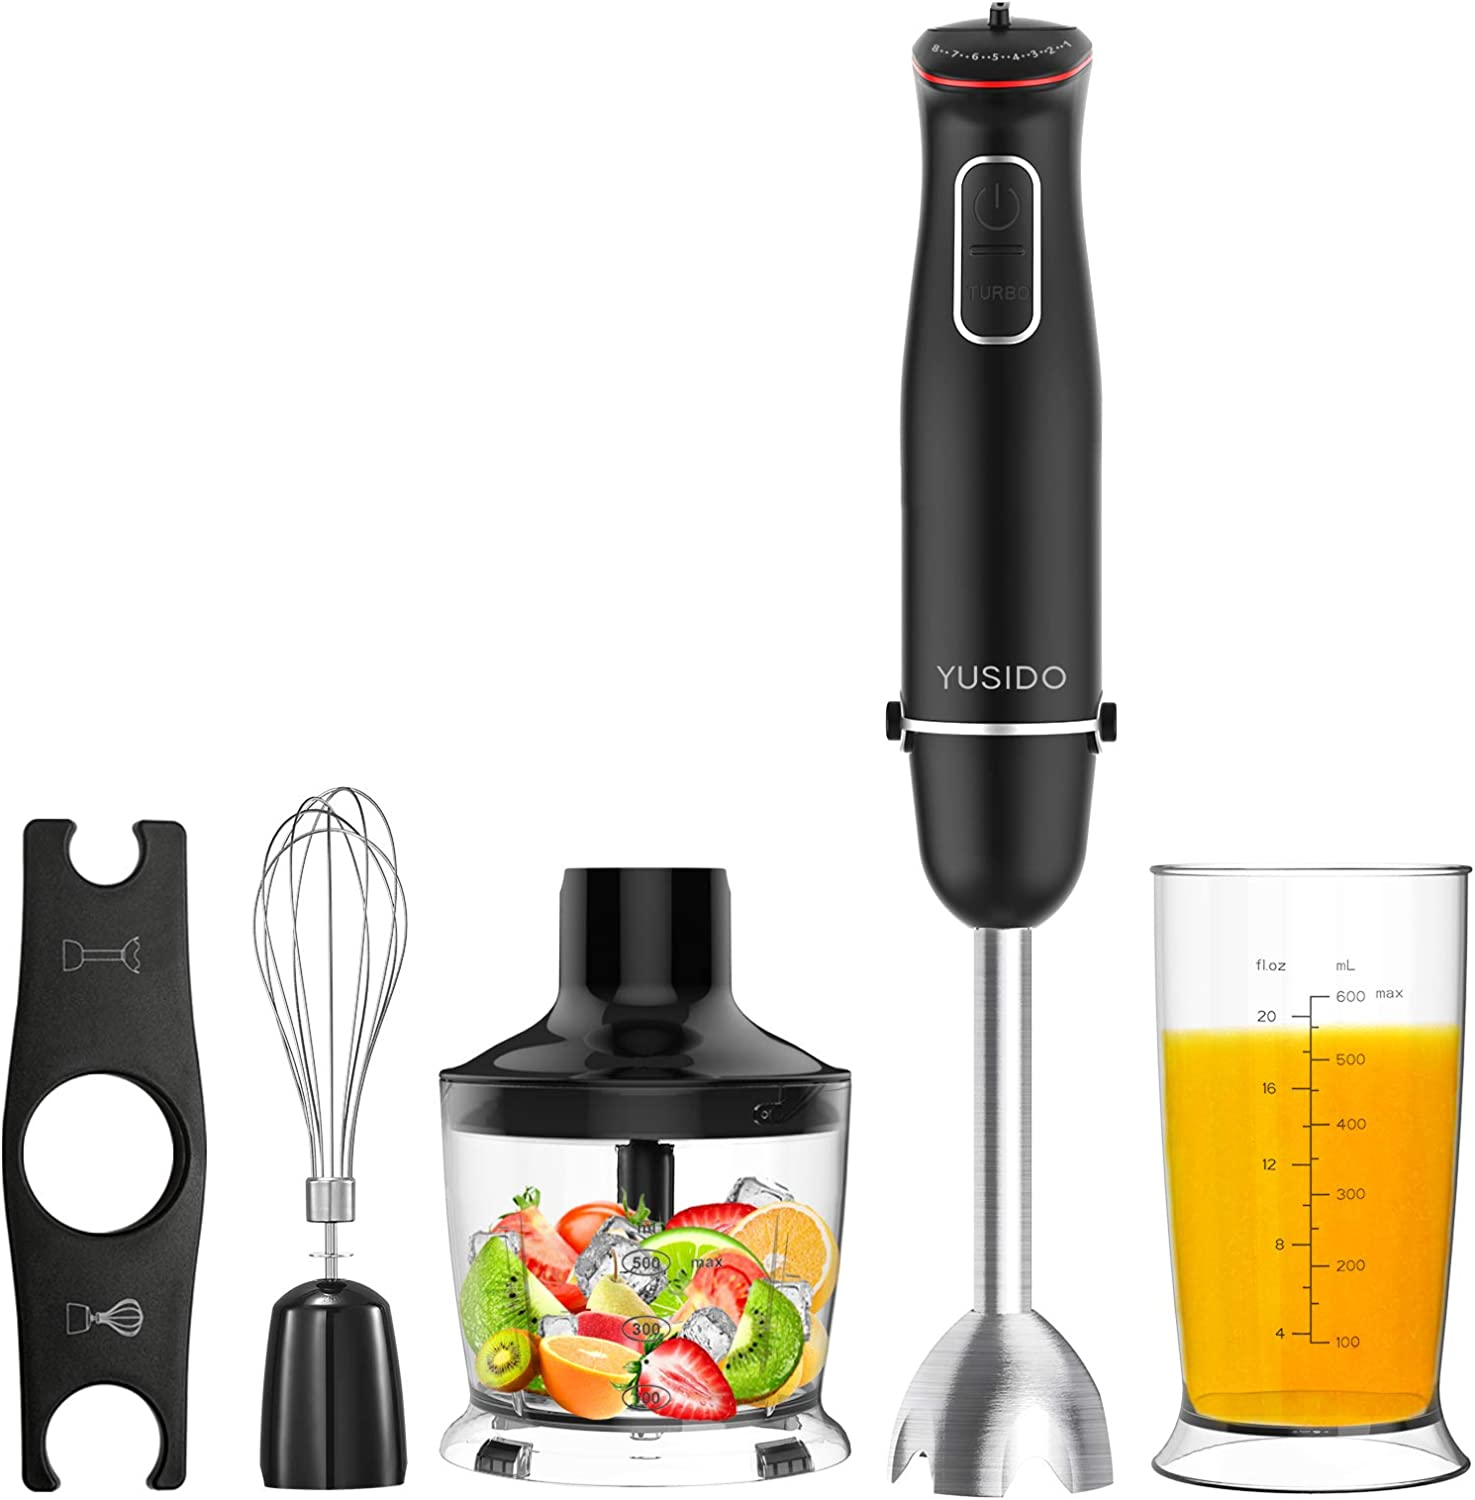 Yusido Immersion Multi-Purpose Hand Blender 800 Watt 8-Speed with Titanium-Plated Blades and Food Grinder Bowl (Black)